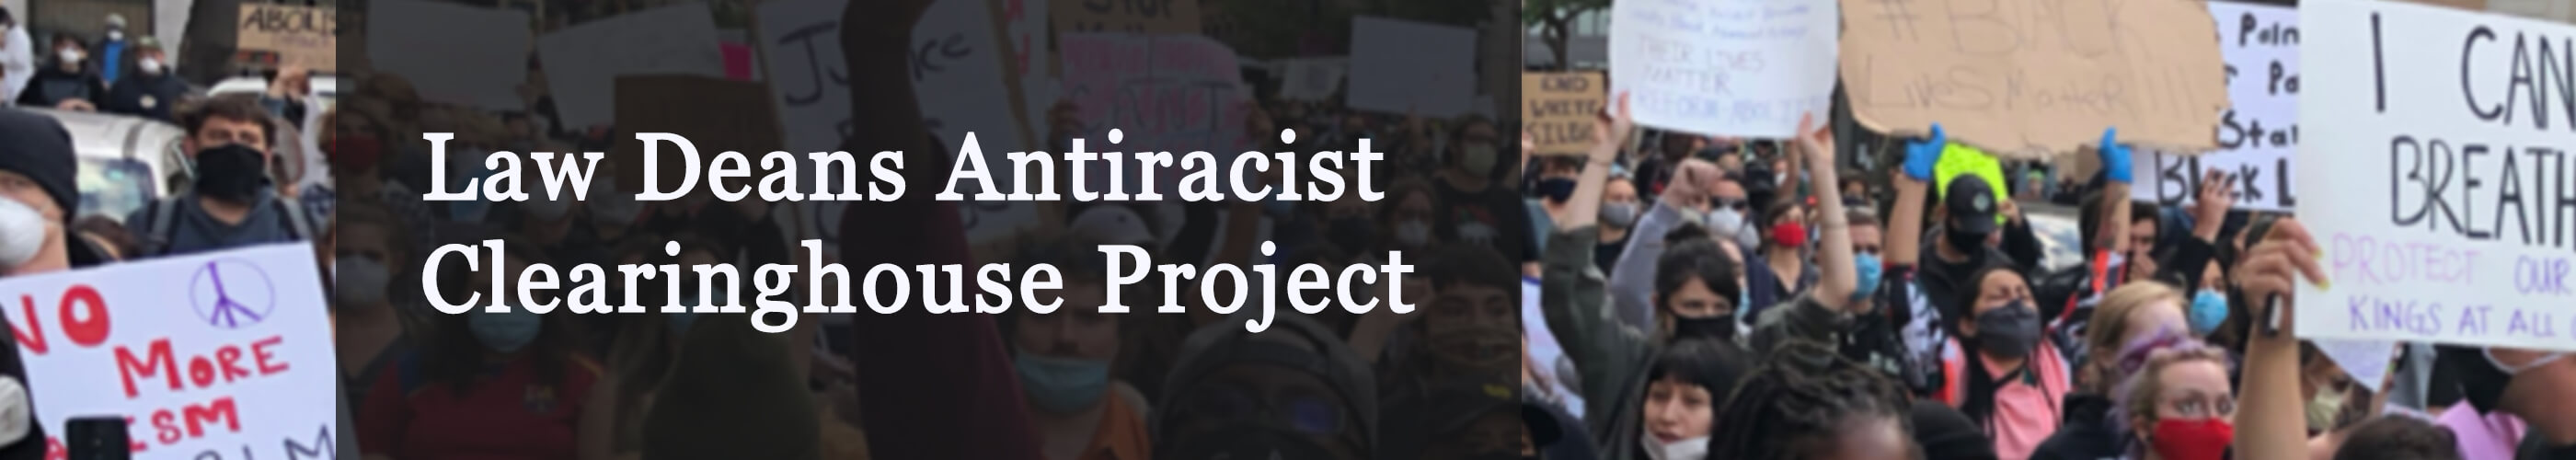 law deans antiracist clearinghouse project